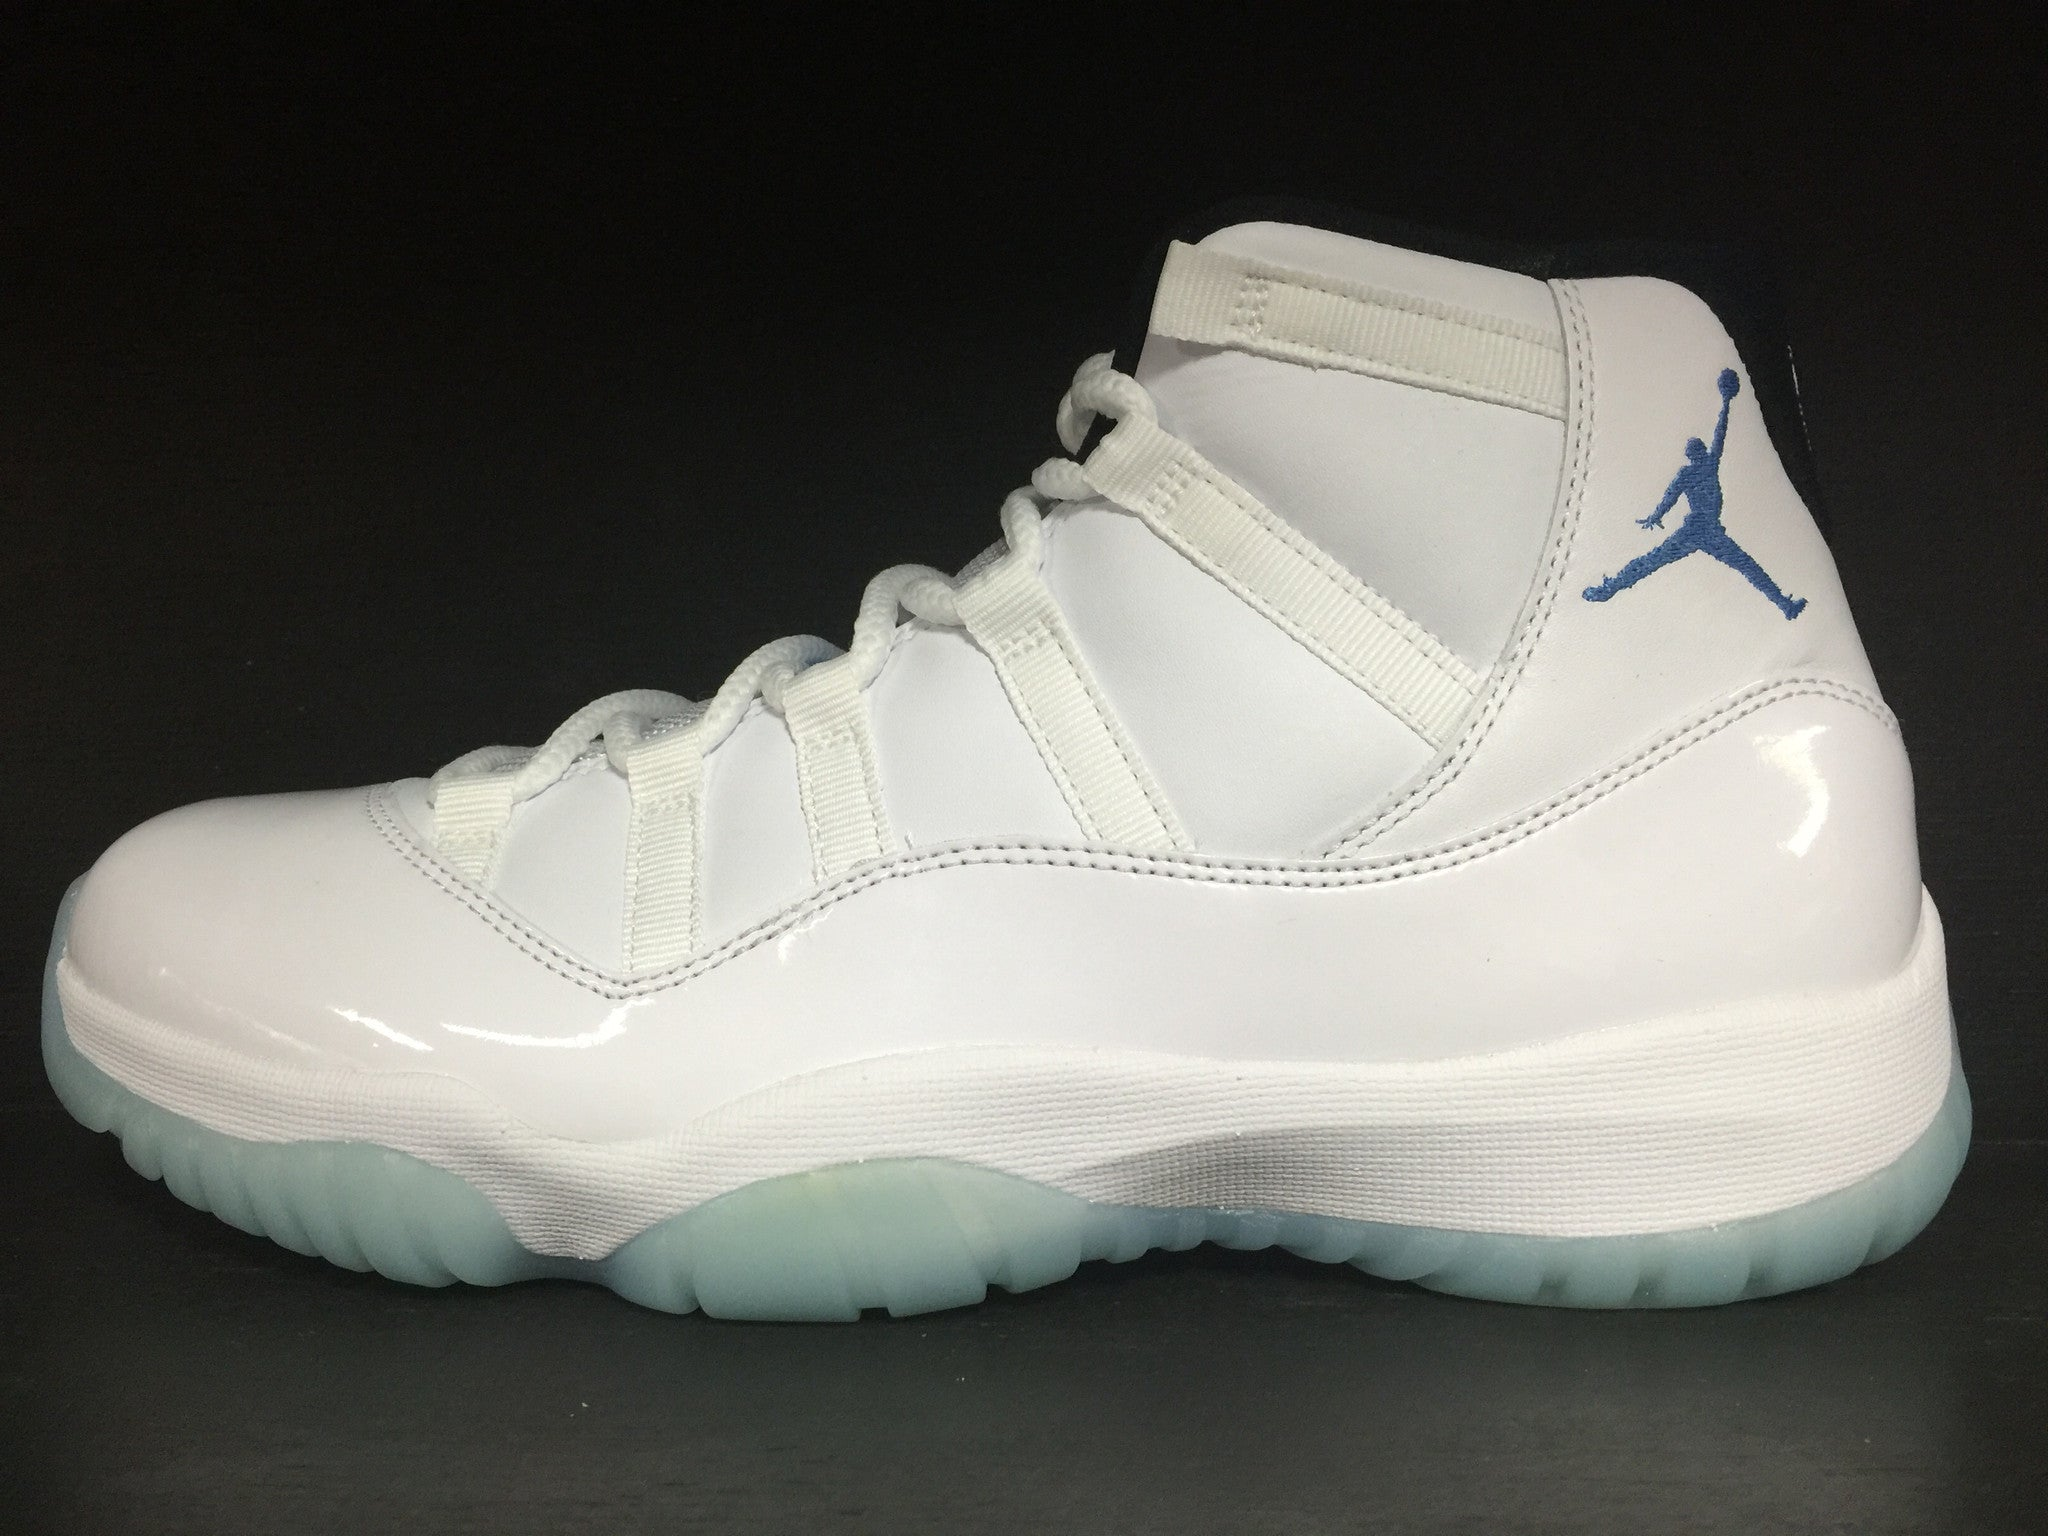 Air Jordan 11 Retro 'Columbia/Legend Blue'